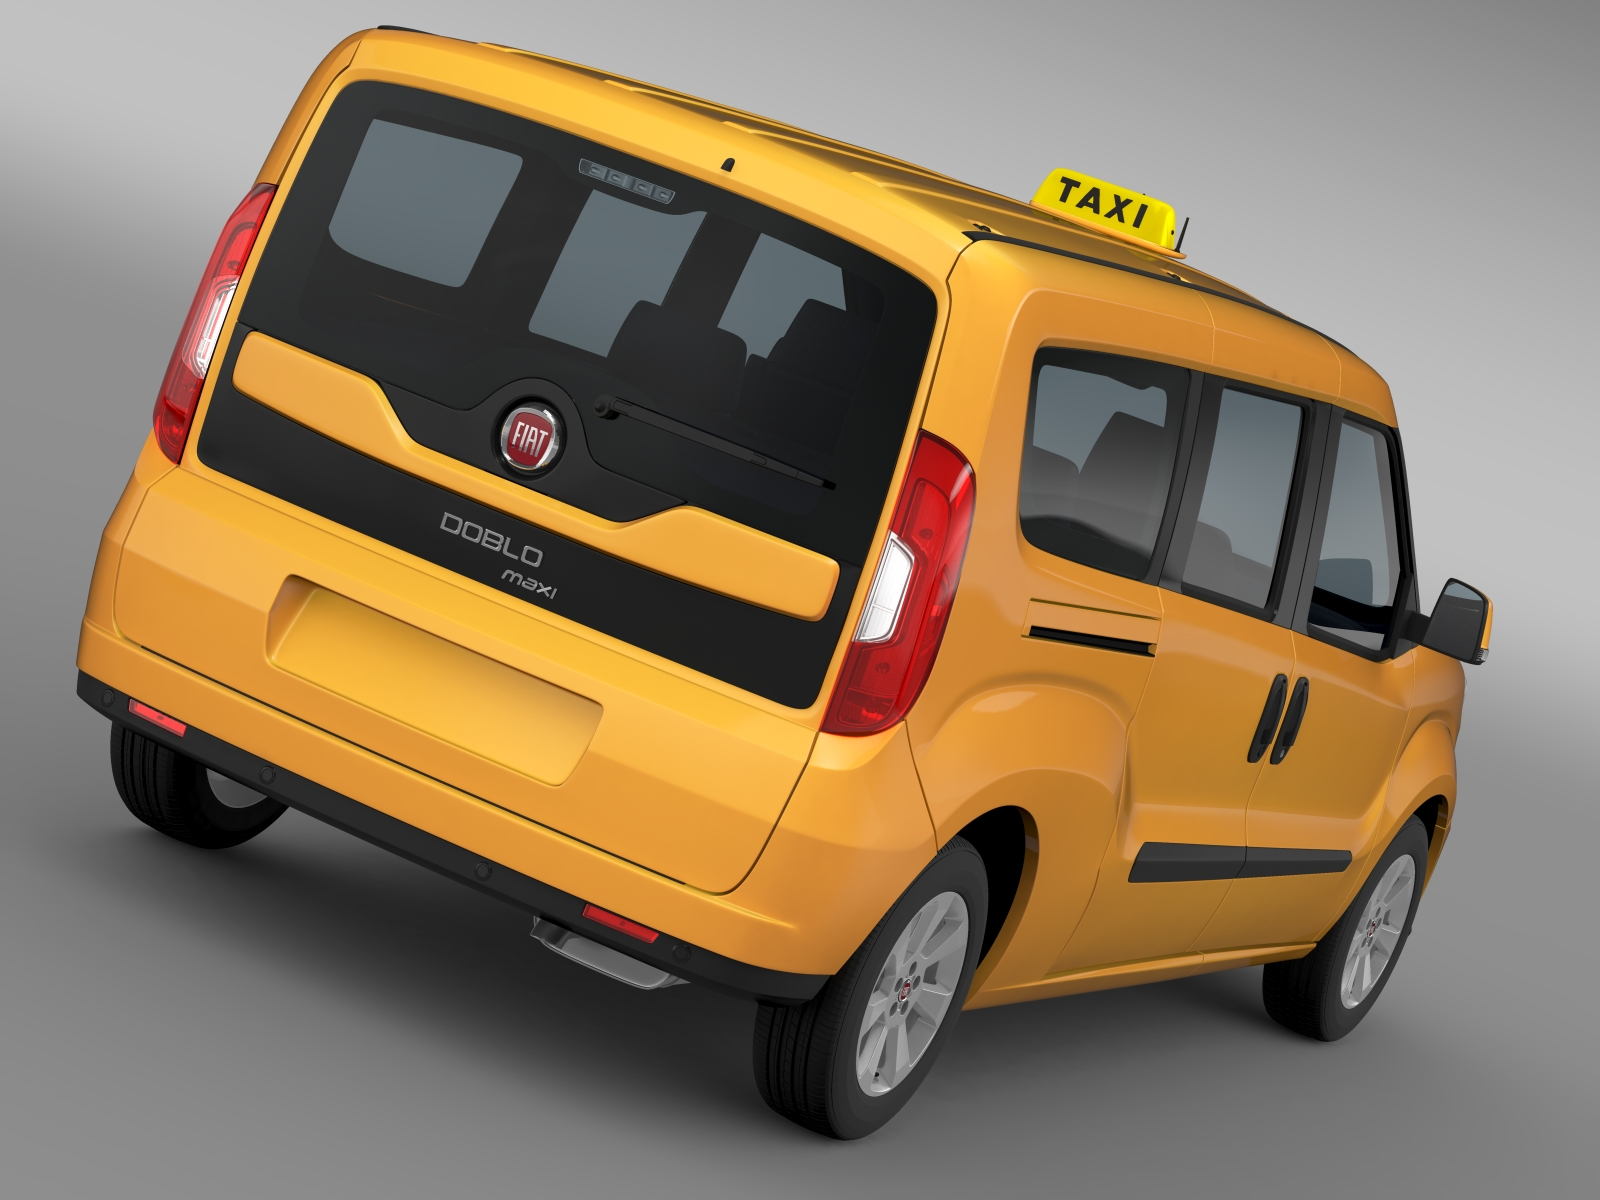 fiat doblo maxi taxi 152 2015 3d model buy fiat doblo maxi taxi 152 2015 3d model flatpyramid. Black Bedroom Furniture Sets. Home Design Ideas